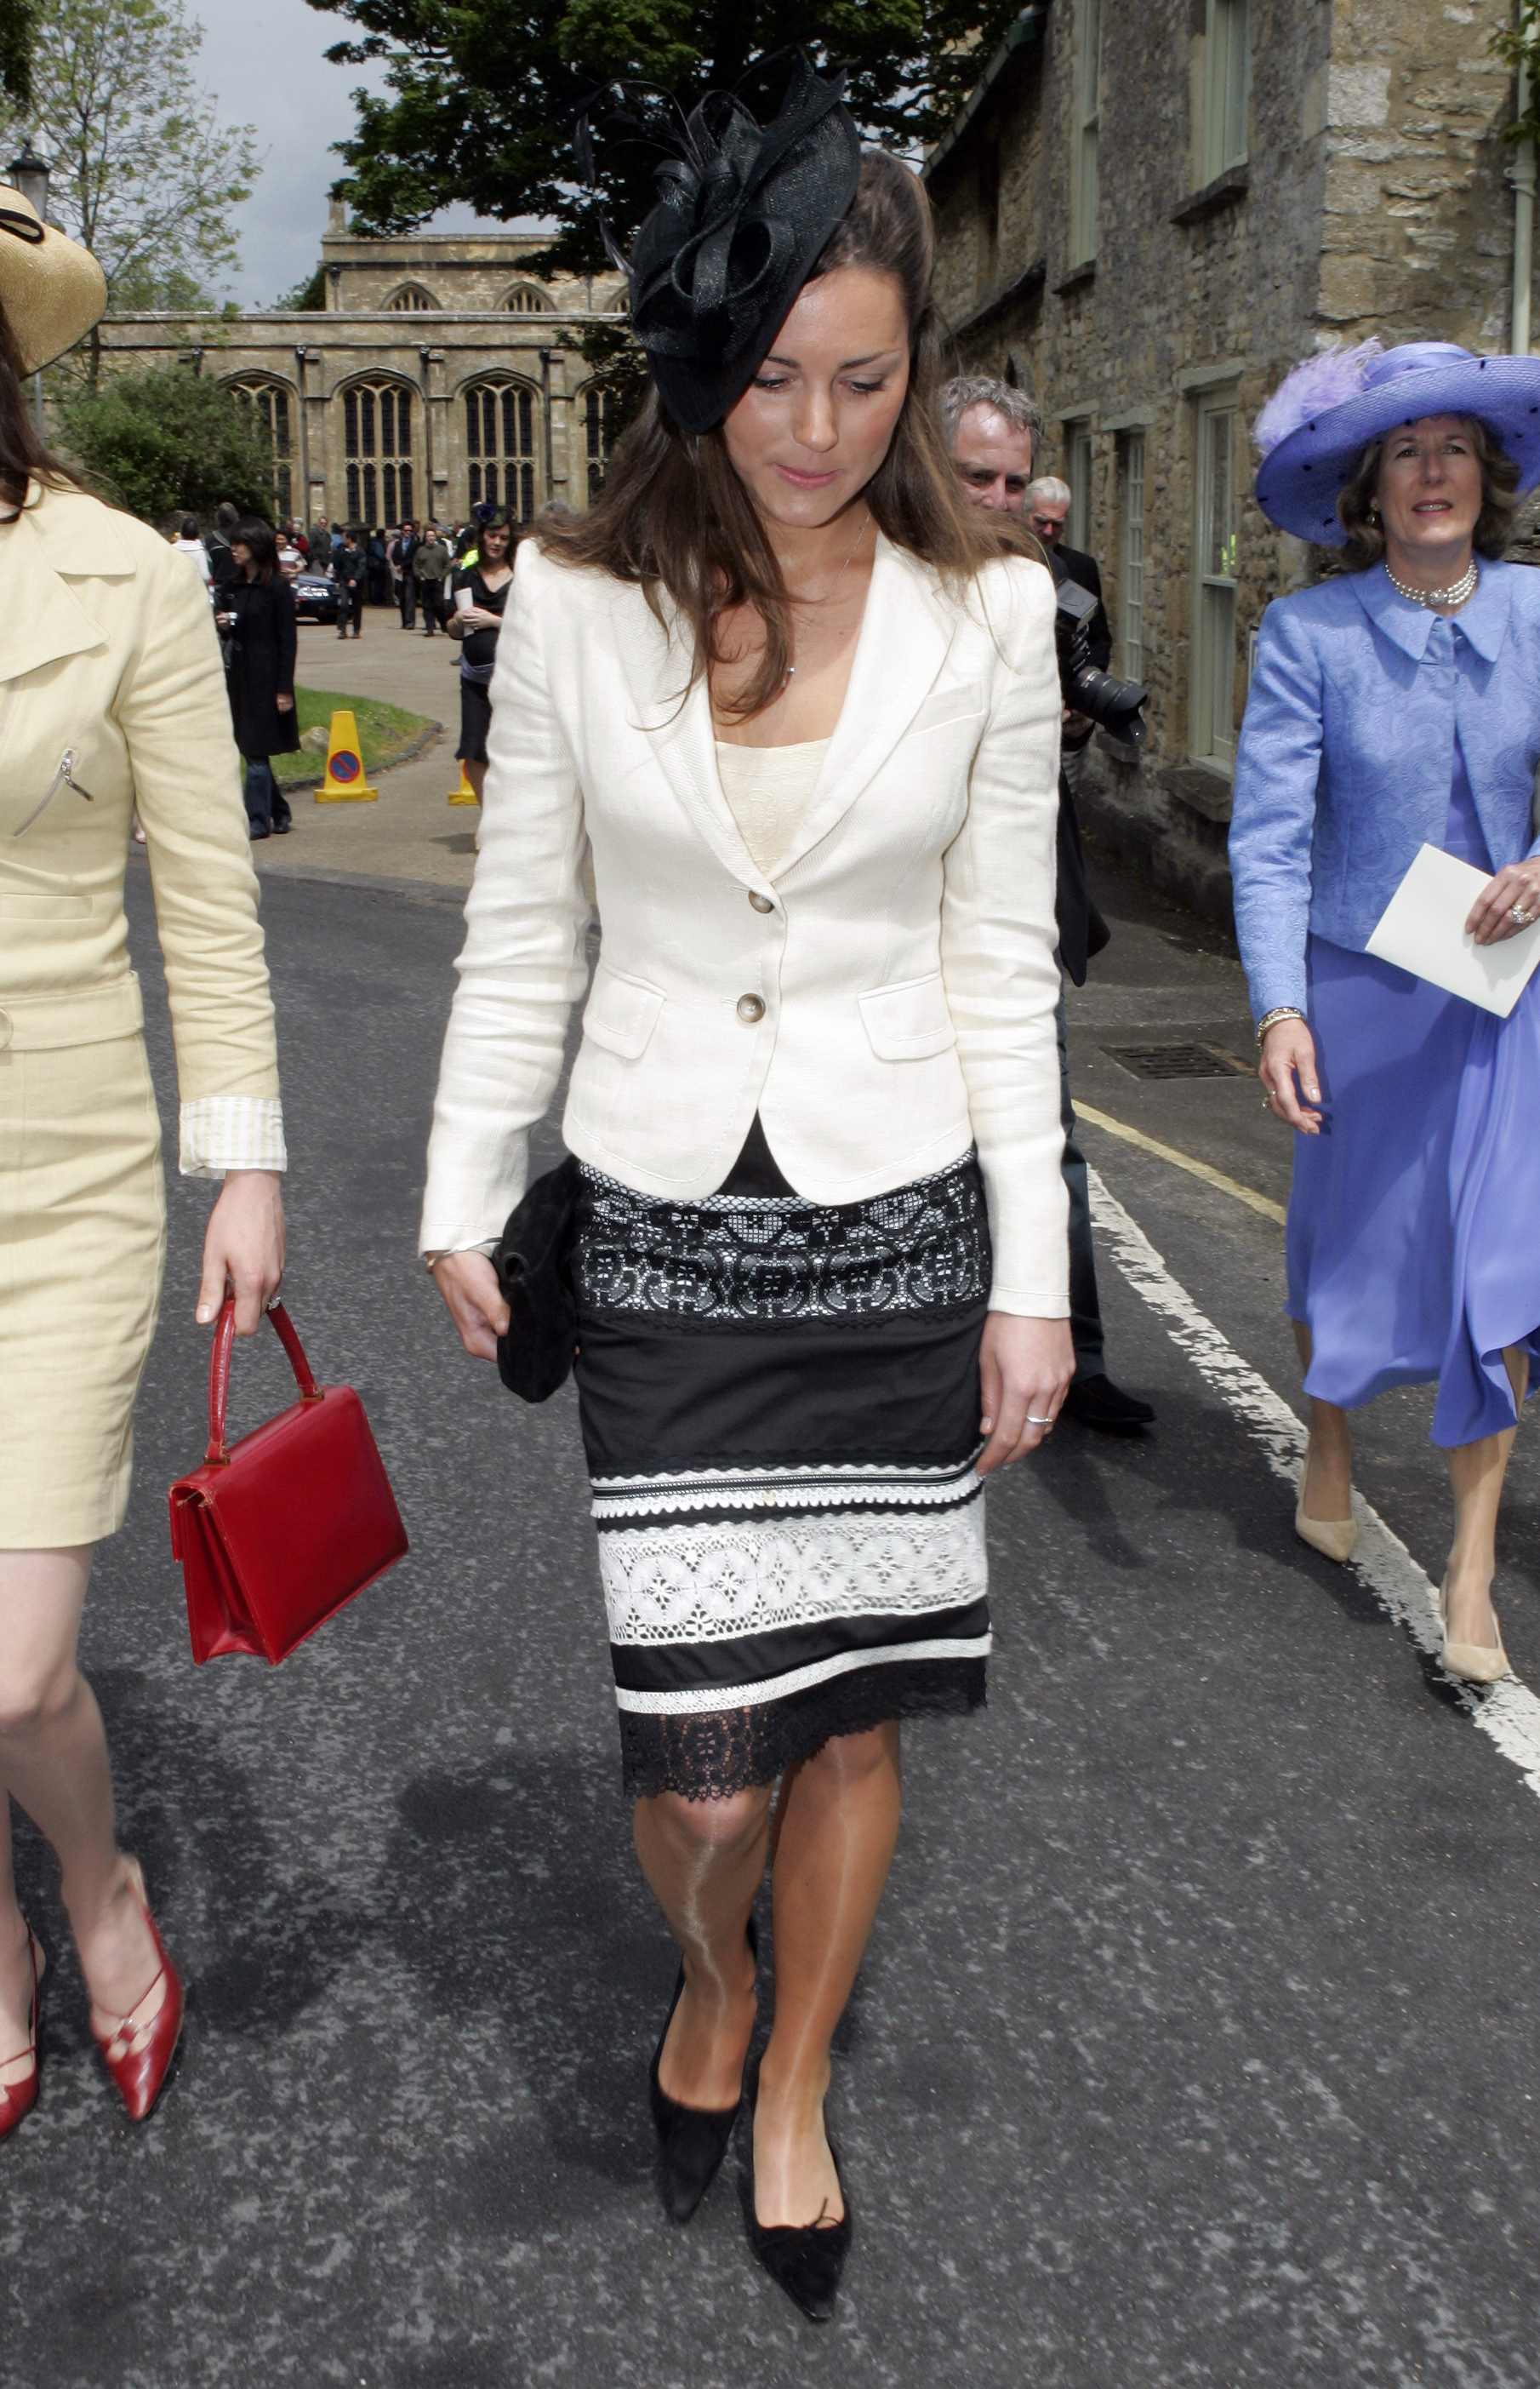 <strong>Black and White and Fashionable All Over</strong>                                   In classic Kate fashion, Middleton attended a friend's wedding in a blazer and fitted skirt. June 4, 2005